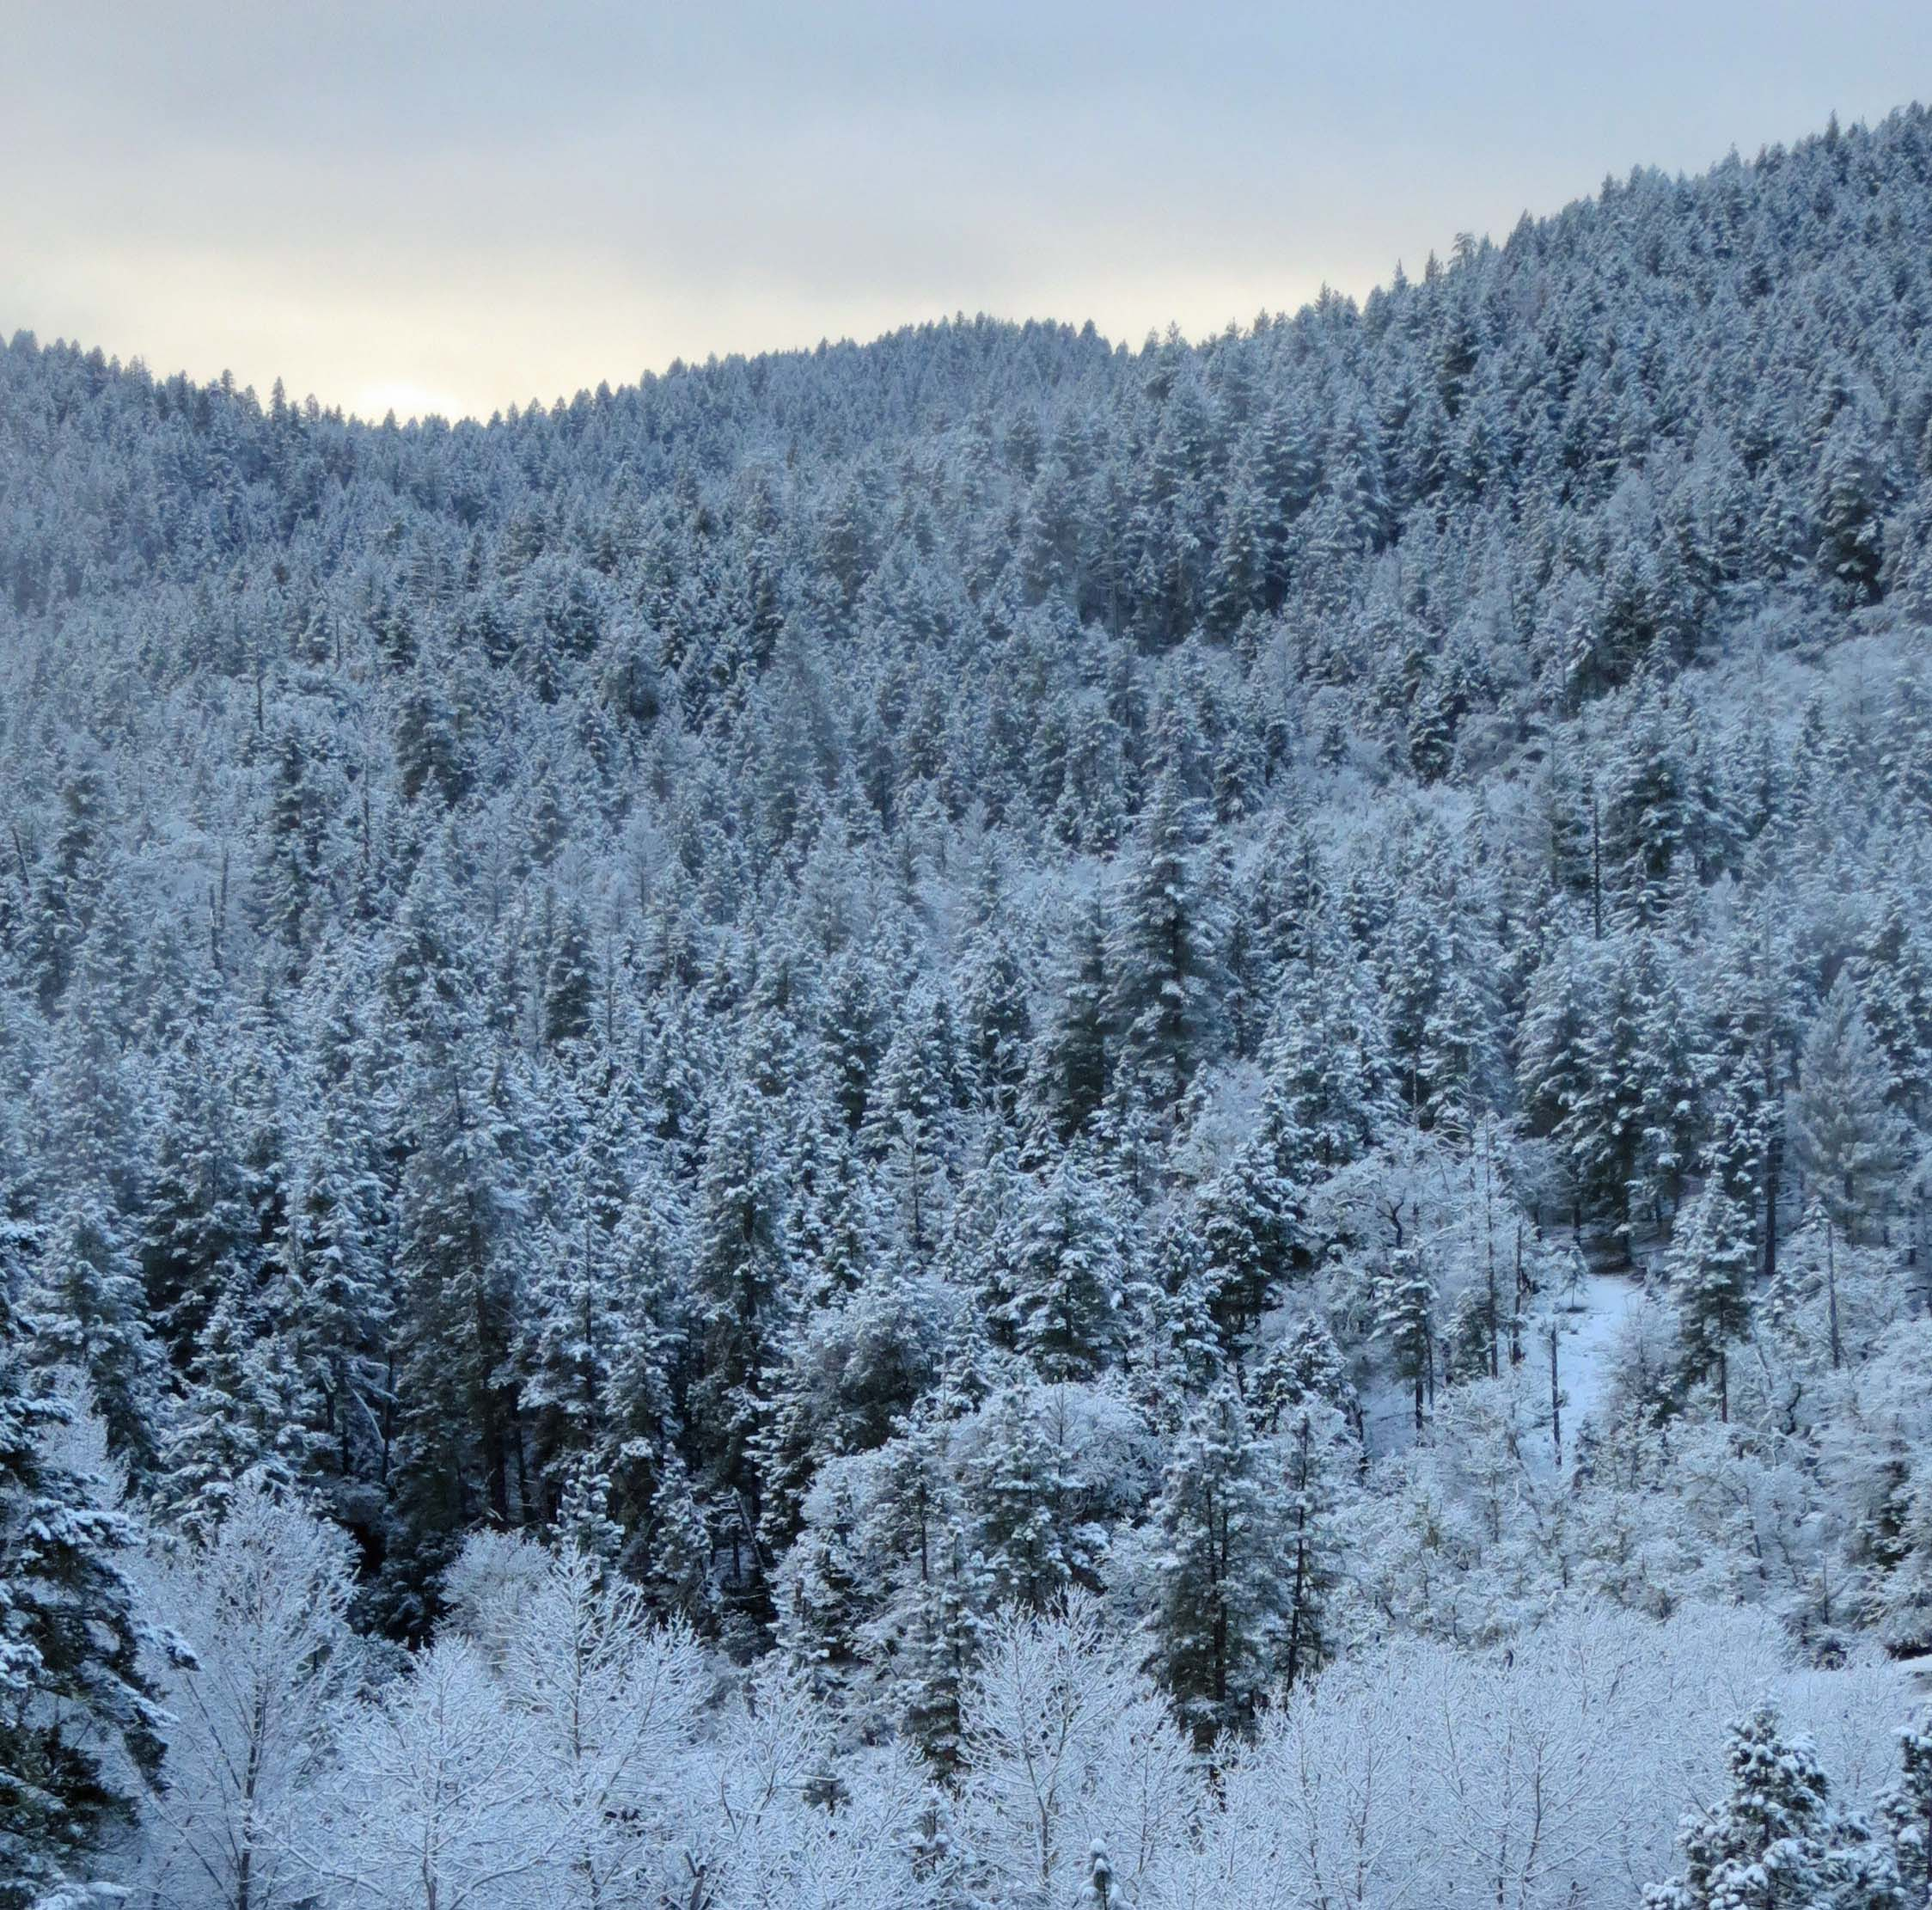 Upper Applegate Valley of southern Oregon covered in snow. Photo by Curtis Mekemson.